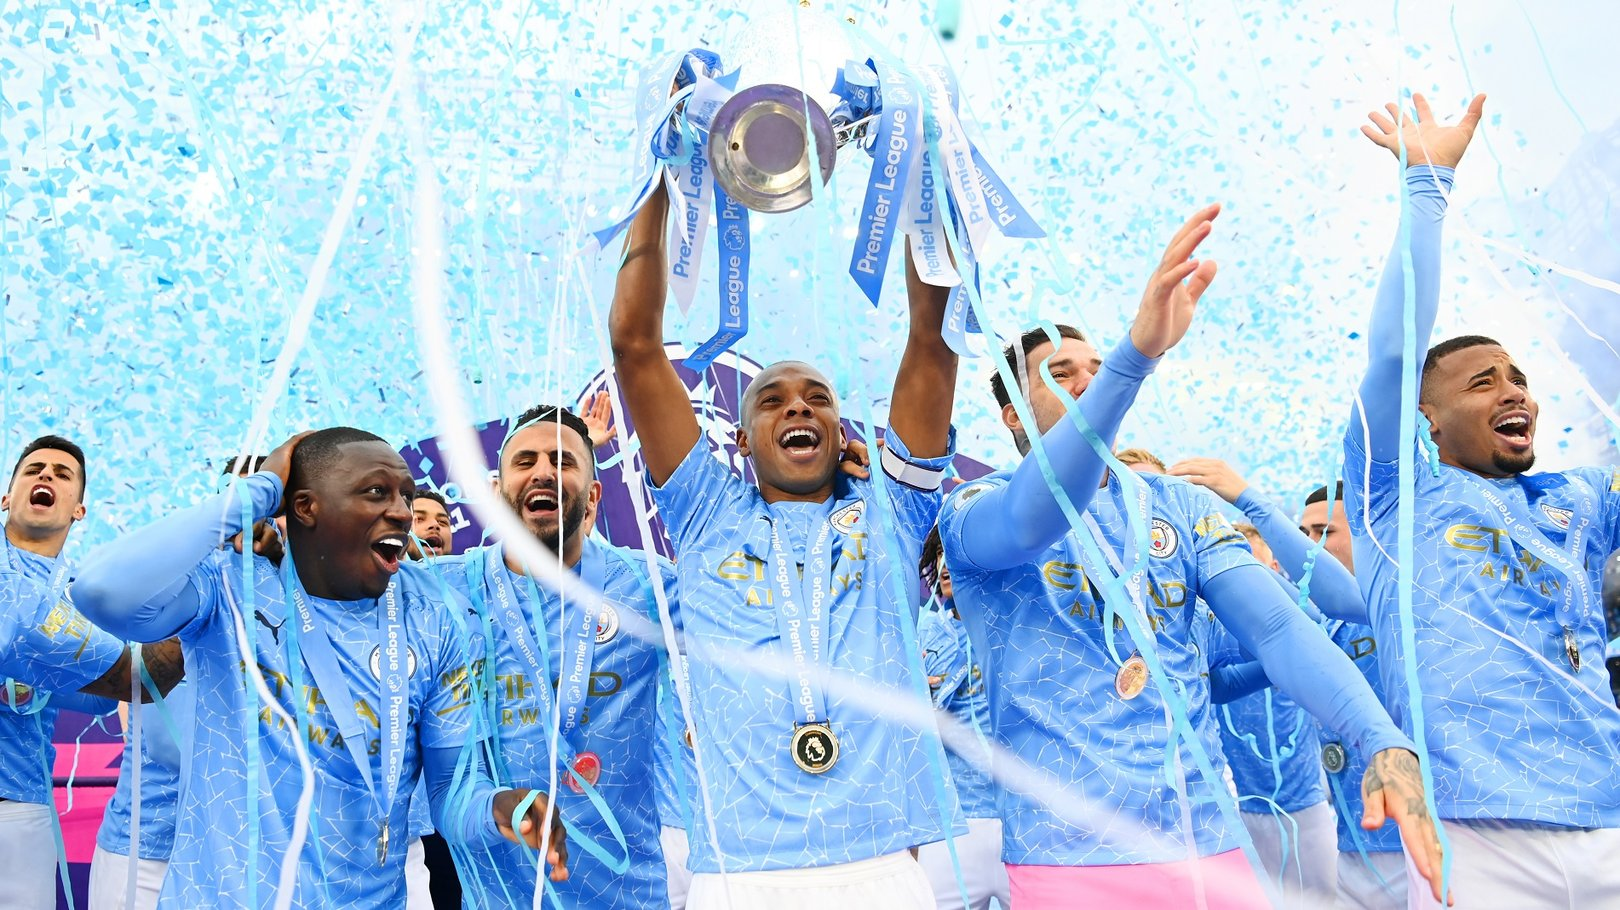 City to start Premier League title defence away to Spurs